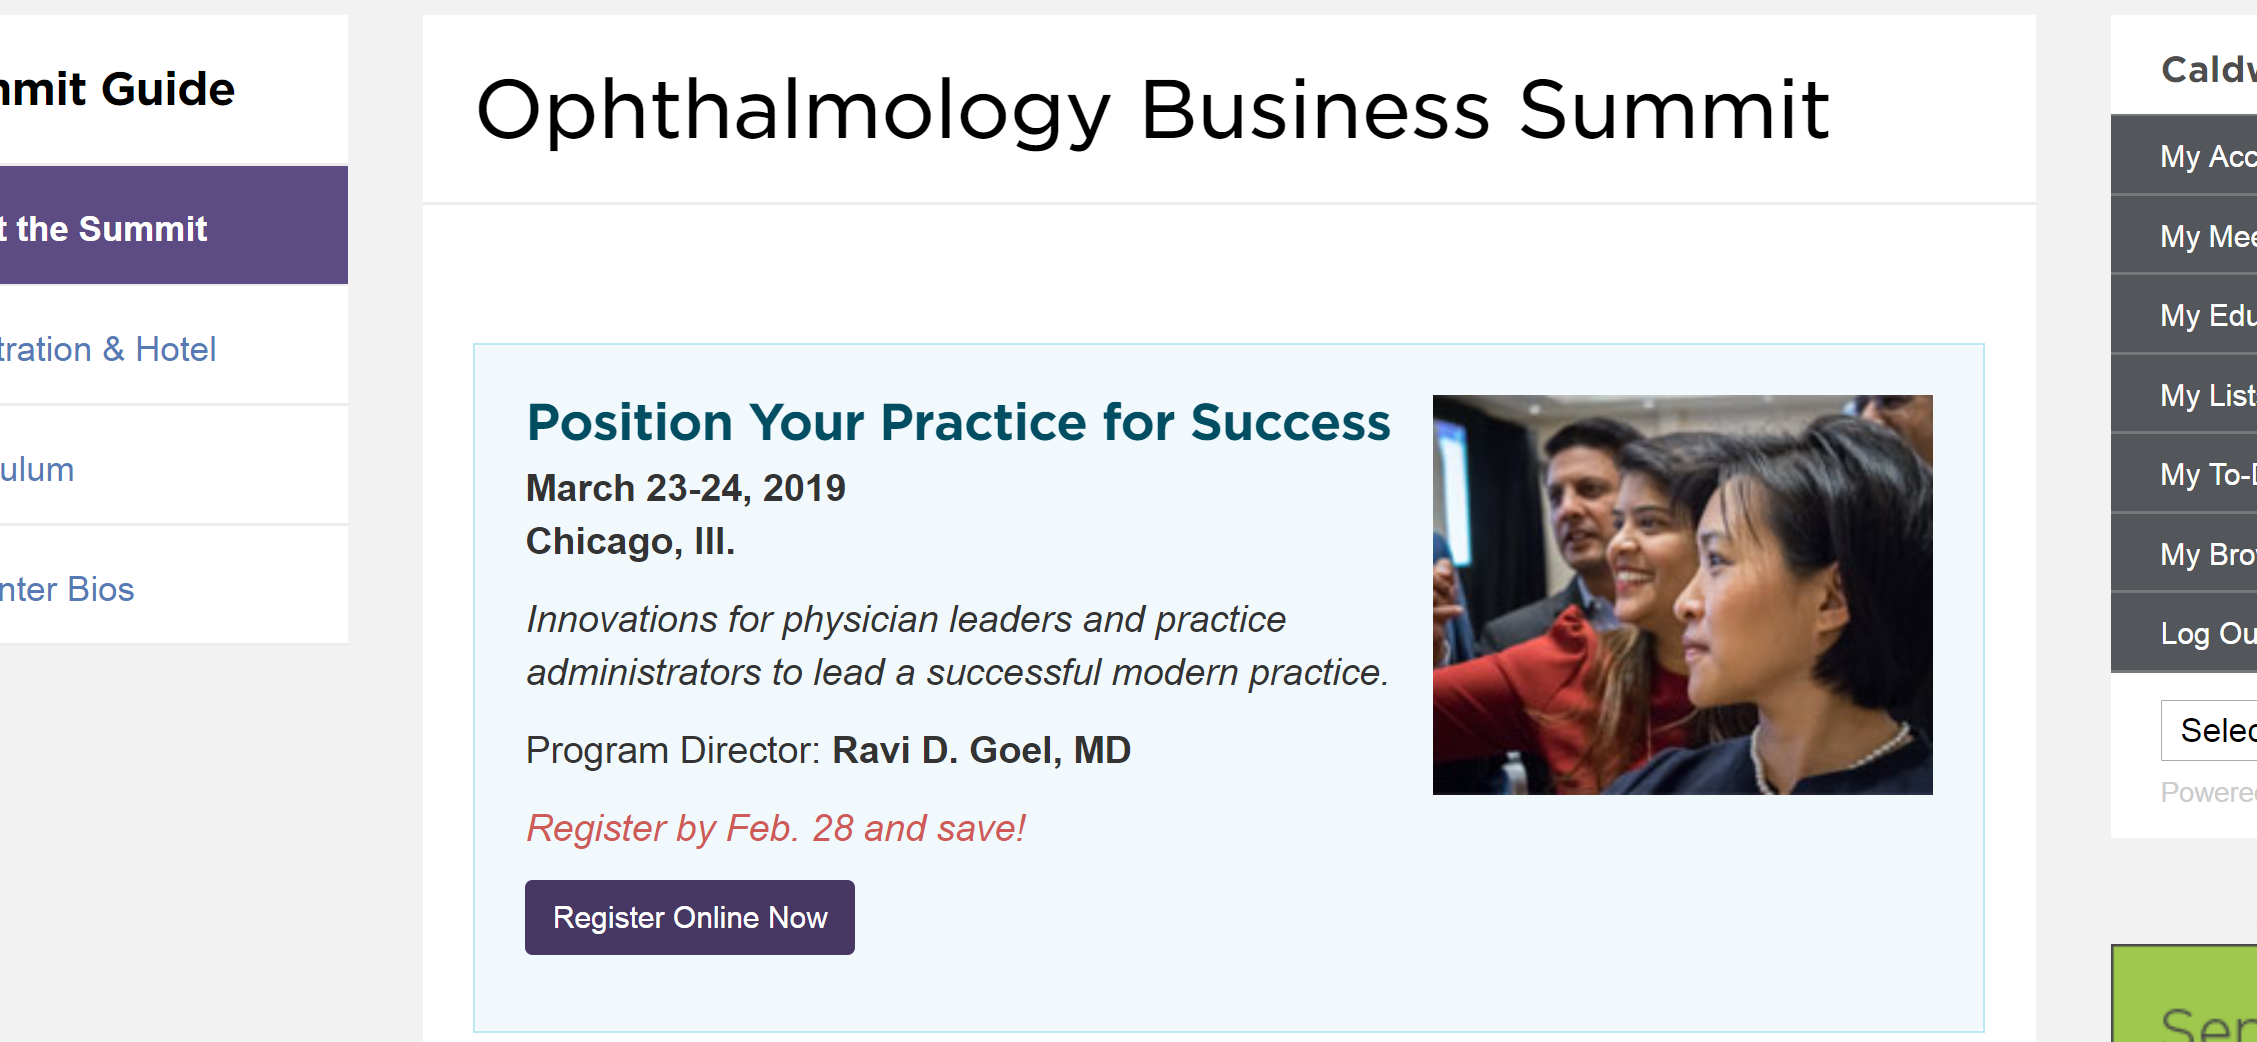 american academy of ophthalmology ophthalmology business summit aao business summitt aao obs chicago